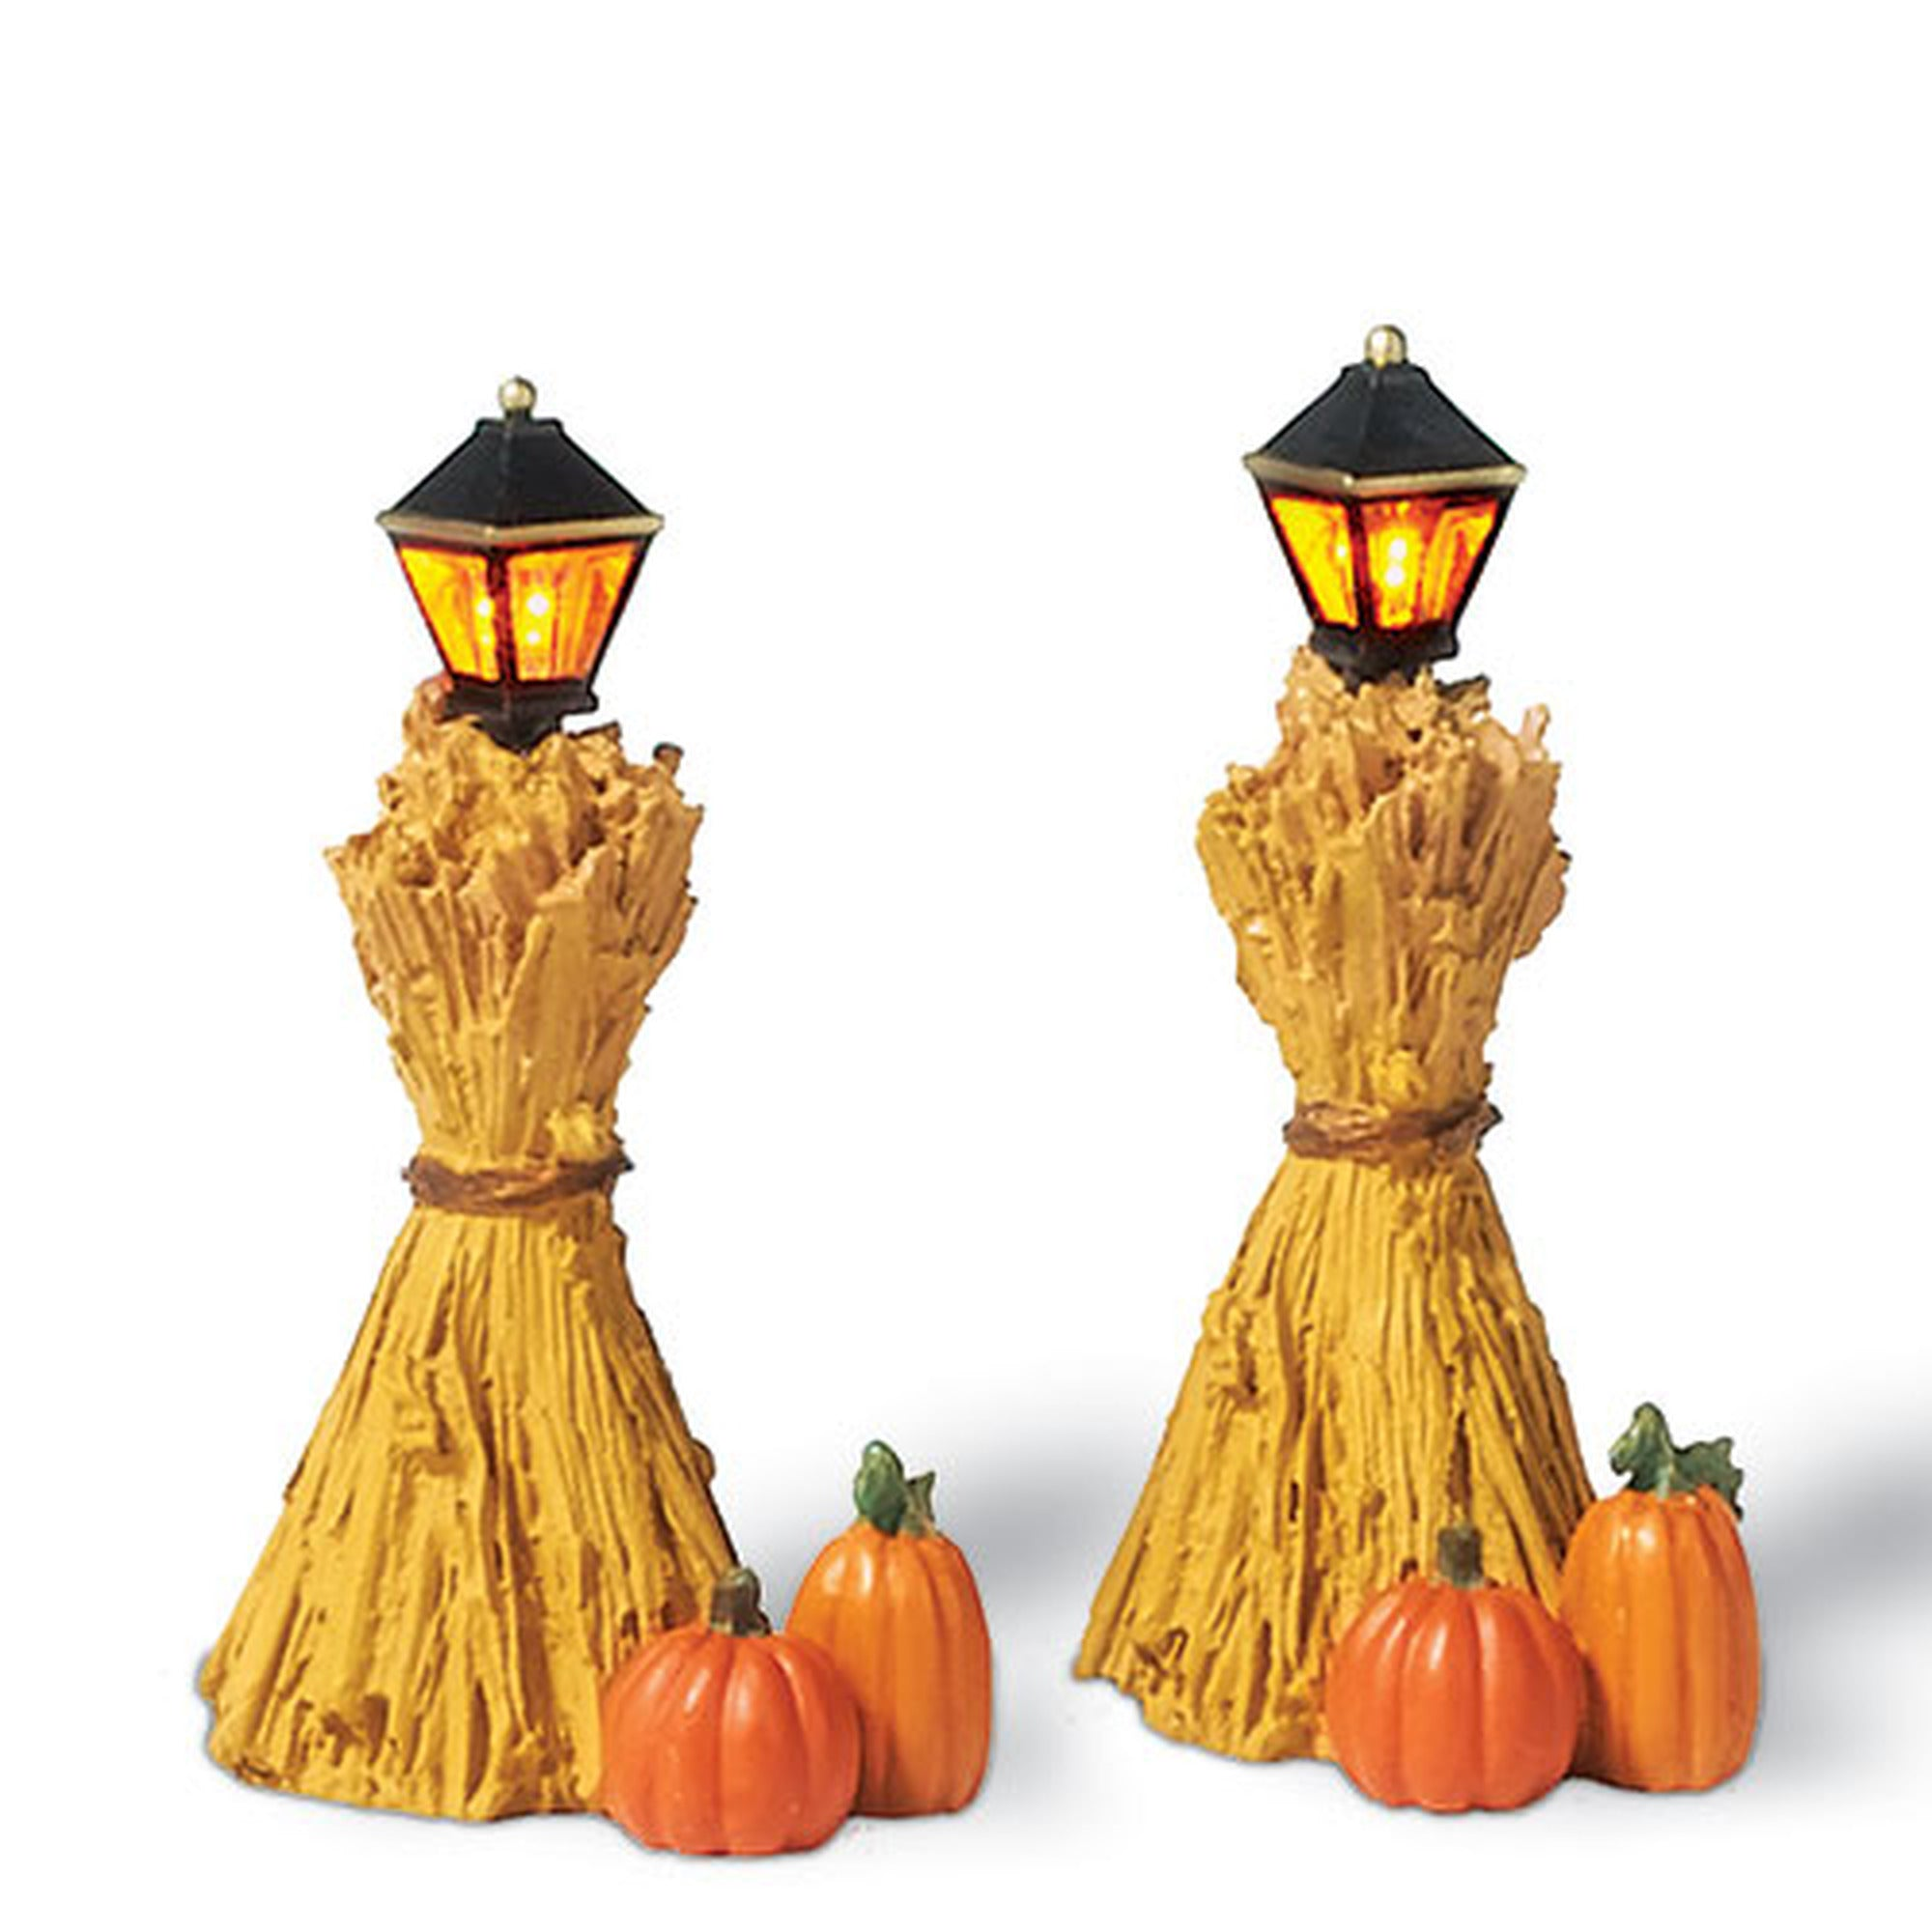 Corn Stalk Lanterns - Mini Lights for Halloween Harvest Village